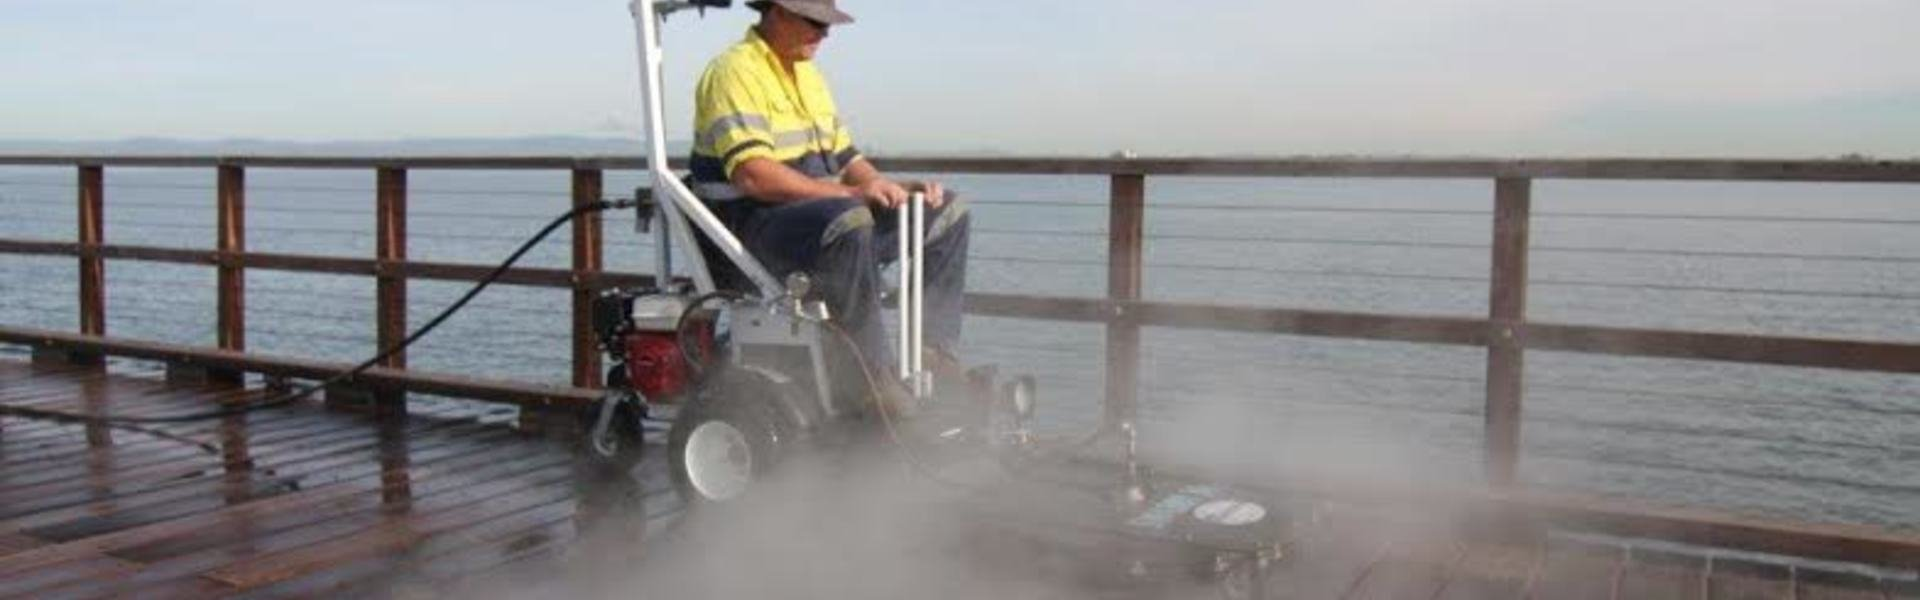 Jetty_Steam_Cleaning_1.jpg